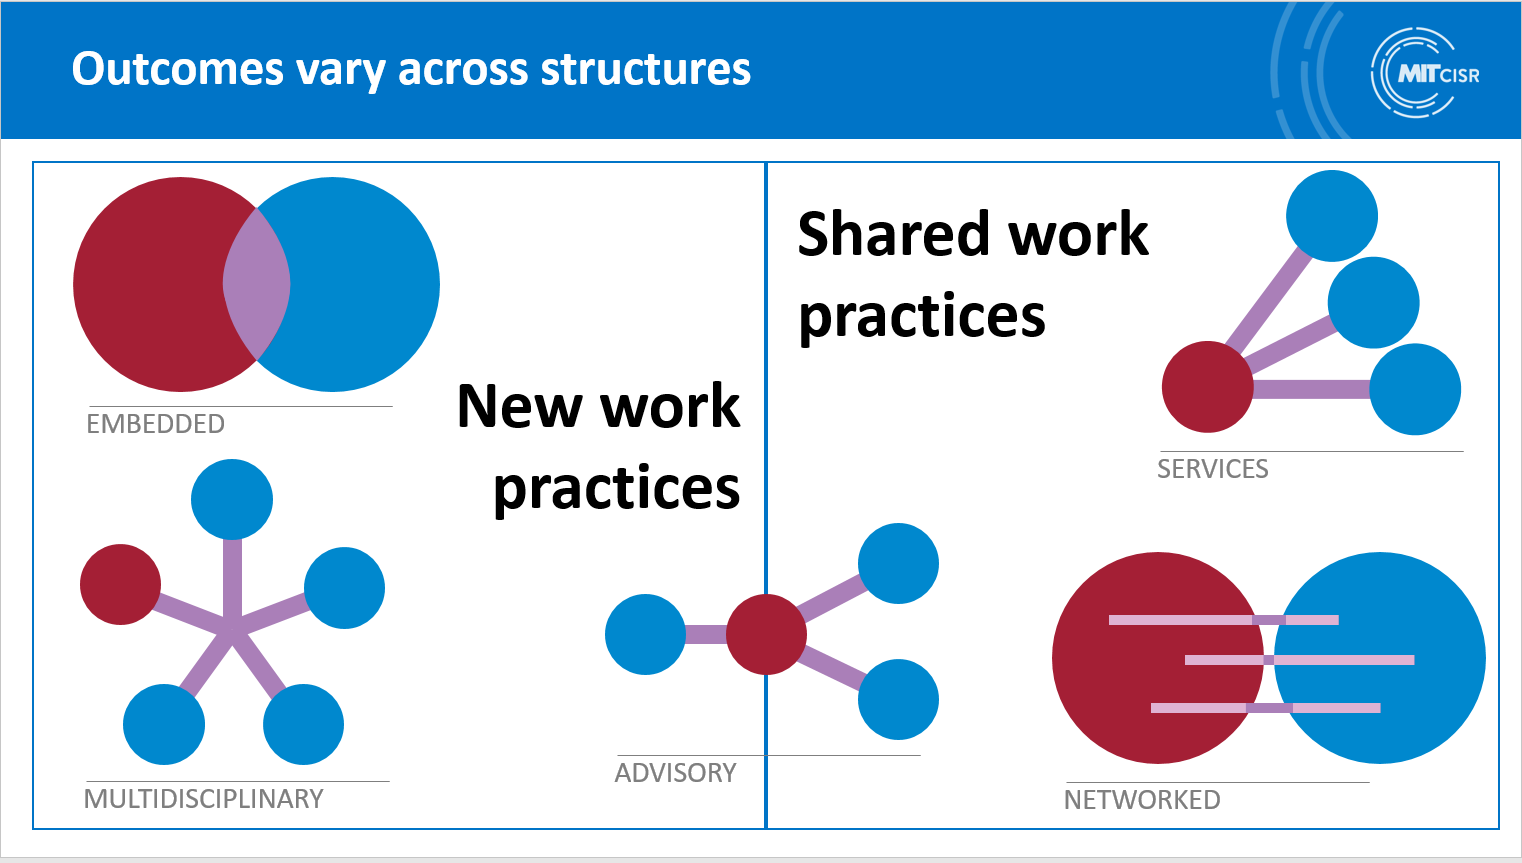 MIT CISR graphic on five ways Microsoft encouraged its employees to embrace a data culture: Embedded, multidisciplinary, advisory, services, and networked.